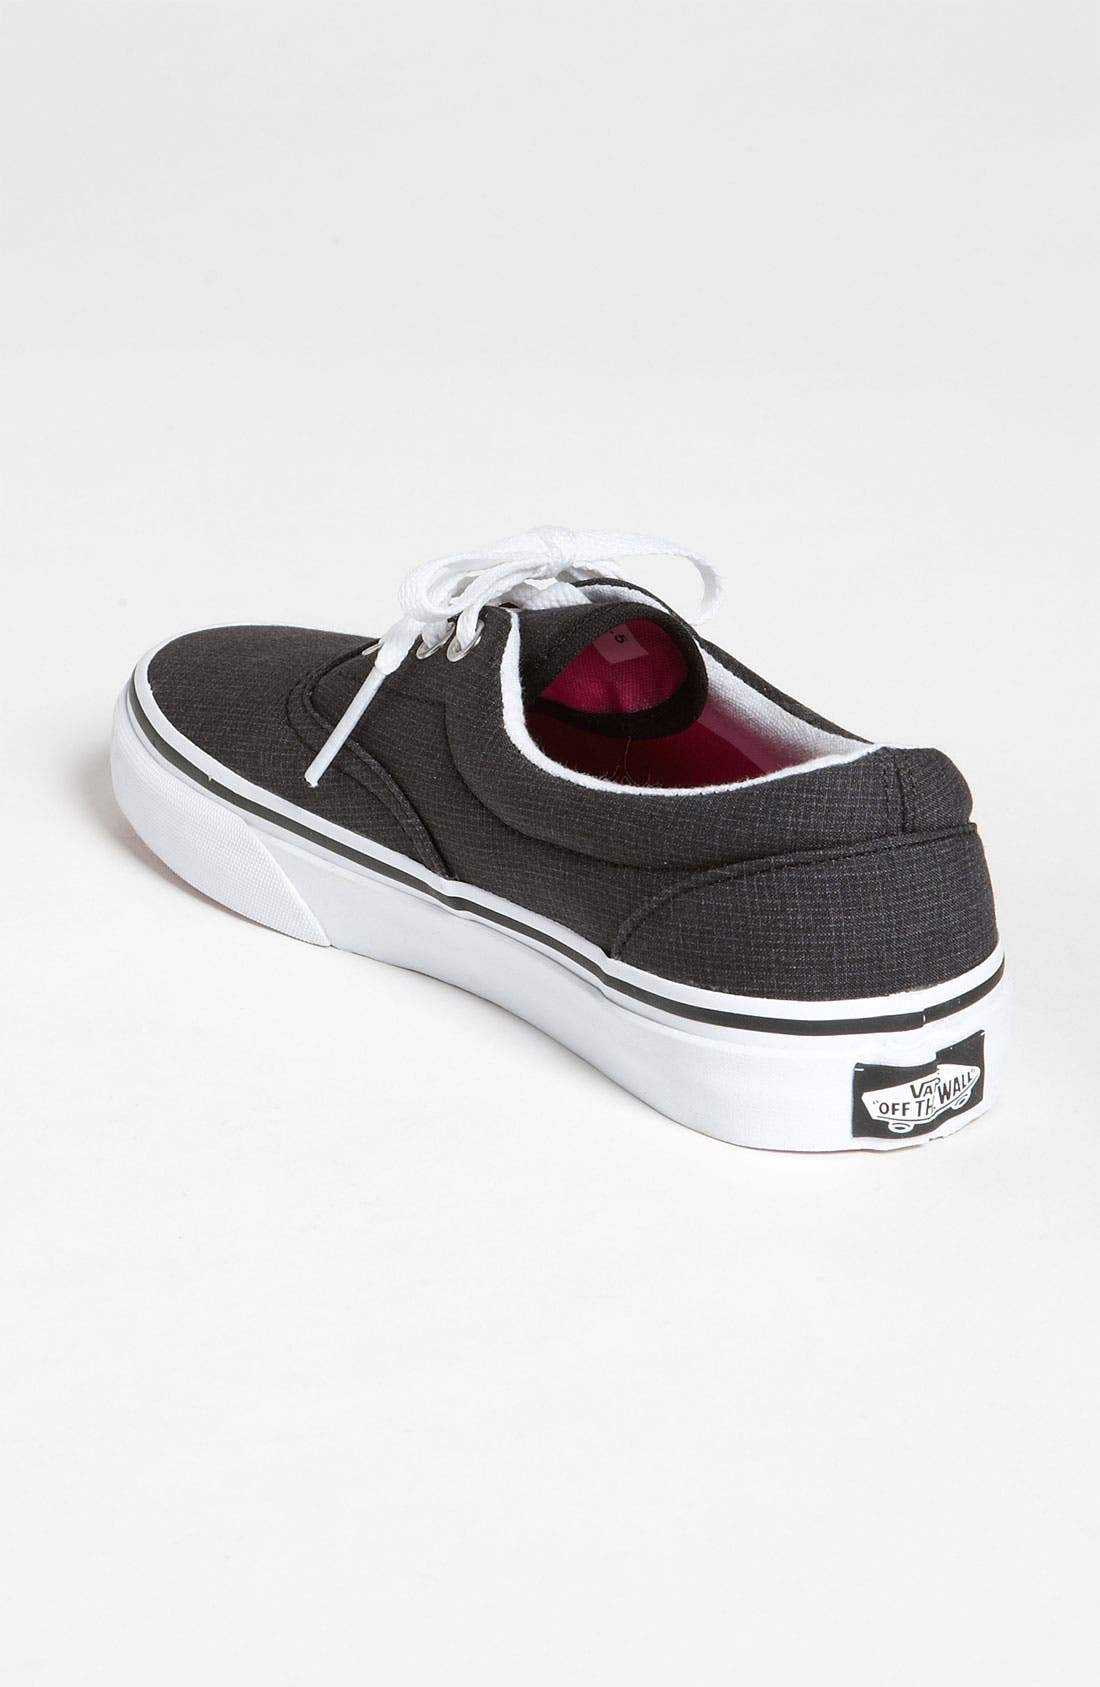 Alternate Image 2  - Vans 'Authentic - Dressy' Sneaker (Women)